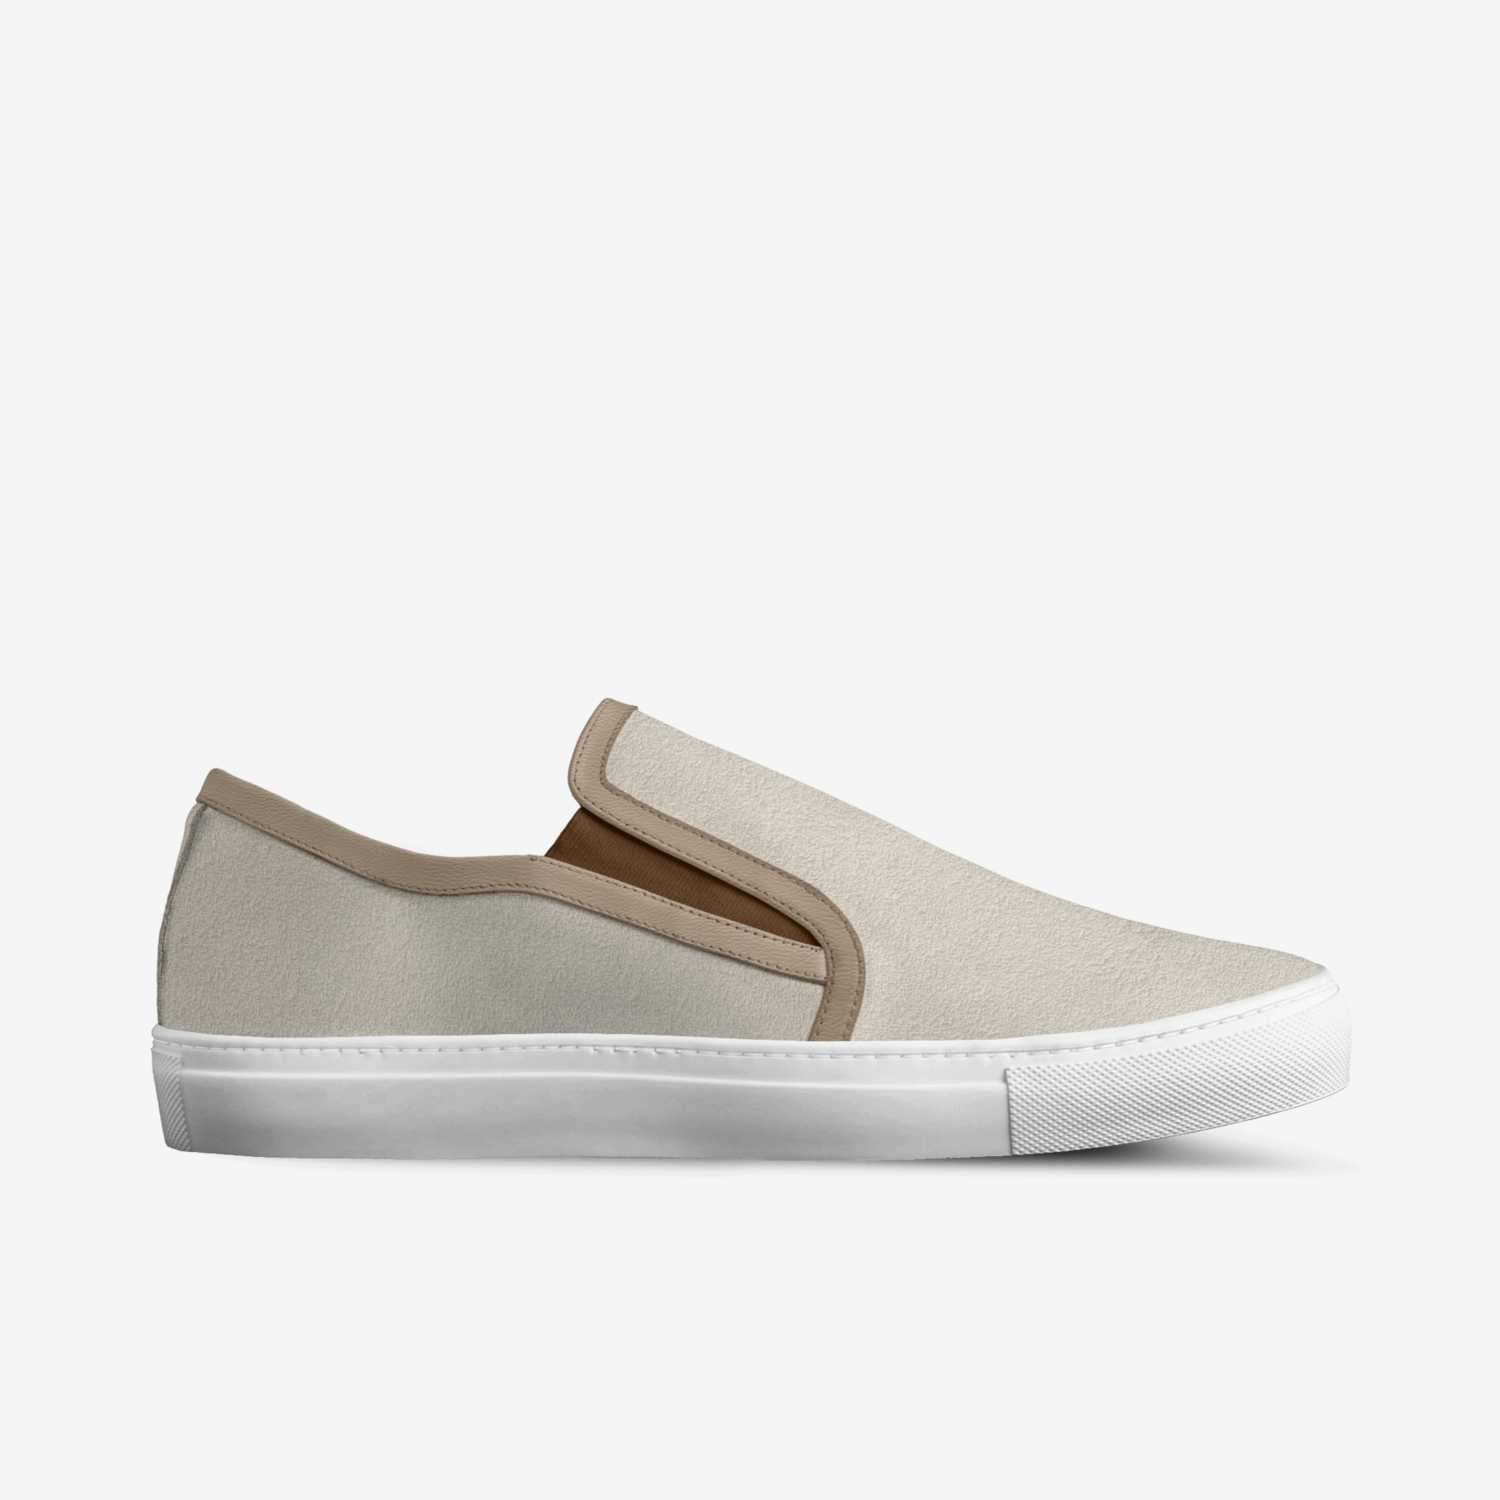 THE PLRB ROYAL SUEDE SLIP ON IN BEIGE | Poor Little Rich Boy Clothing